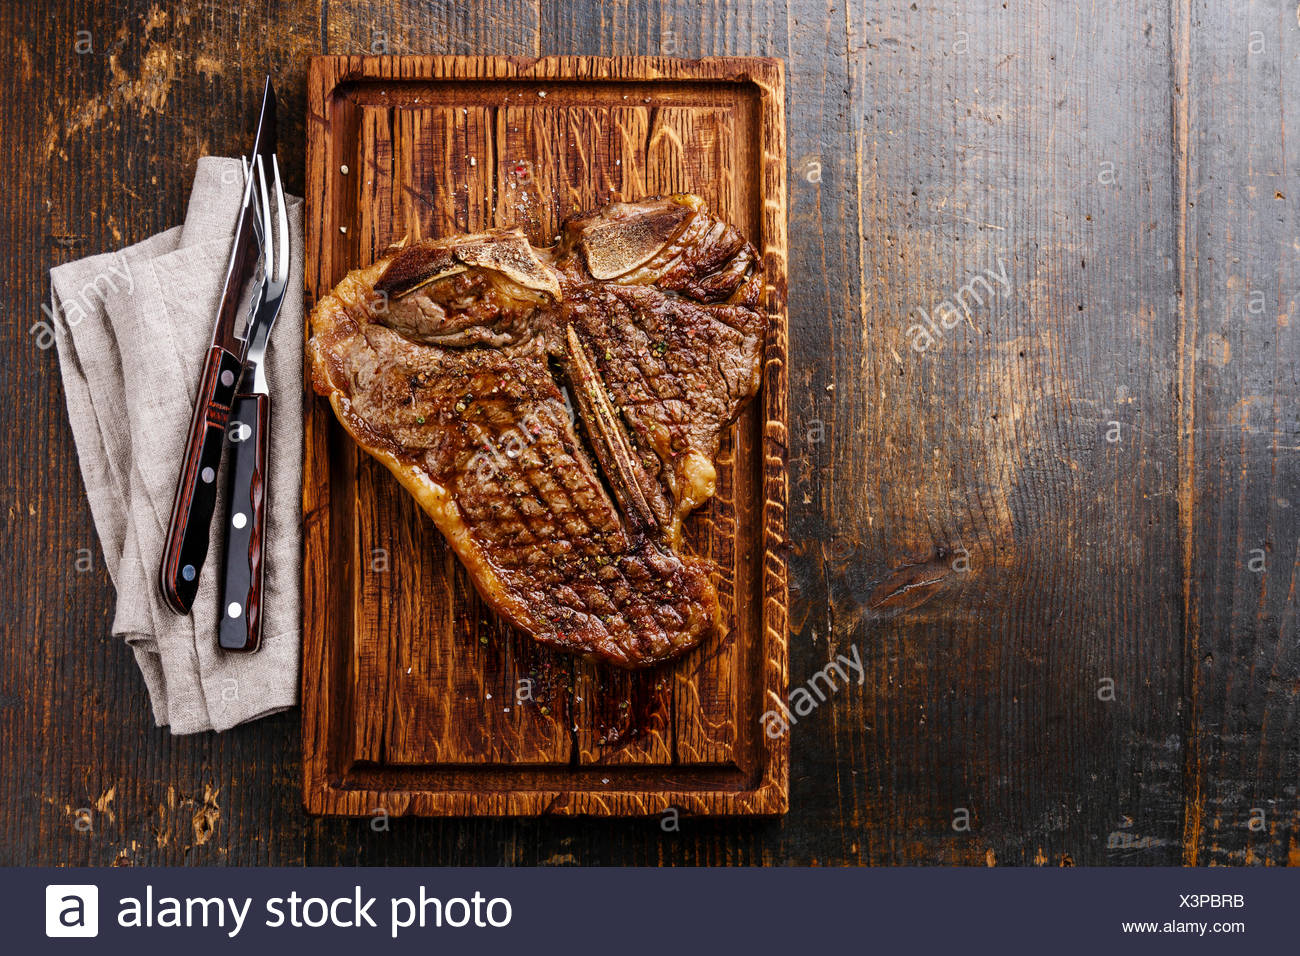 Grilled T-Bone Steak with fork and knife on serving board on wooden background Stock Photo